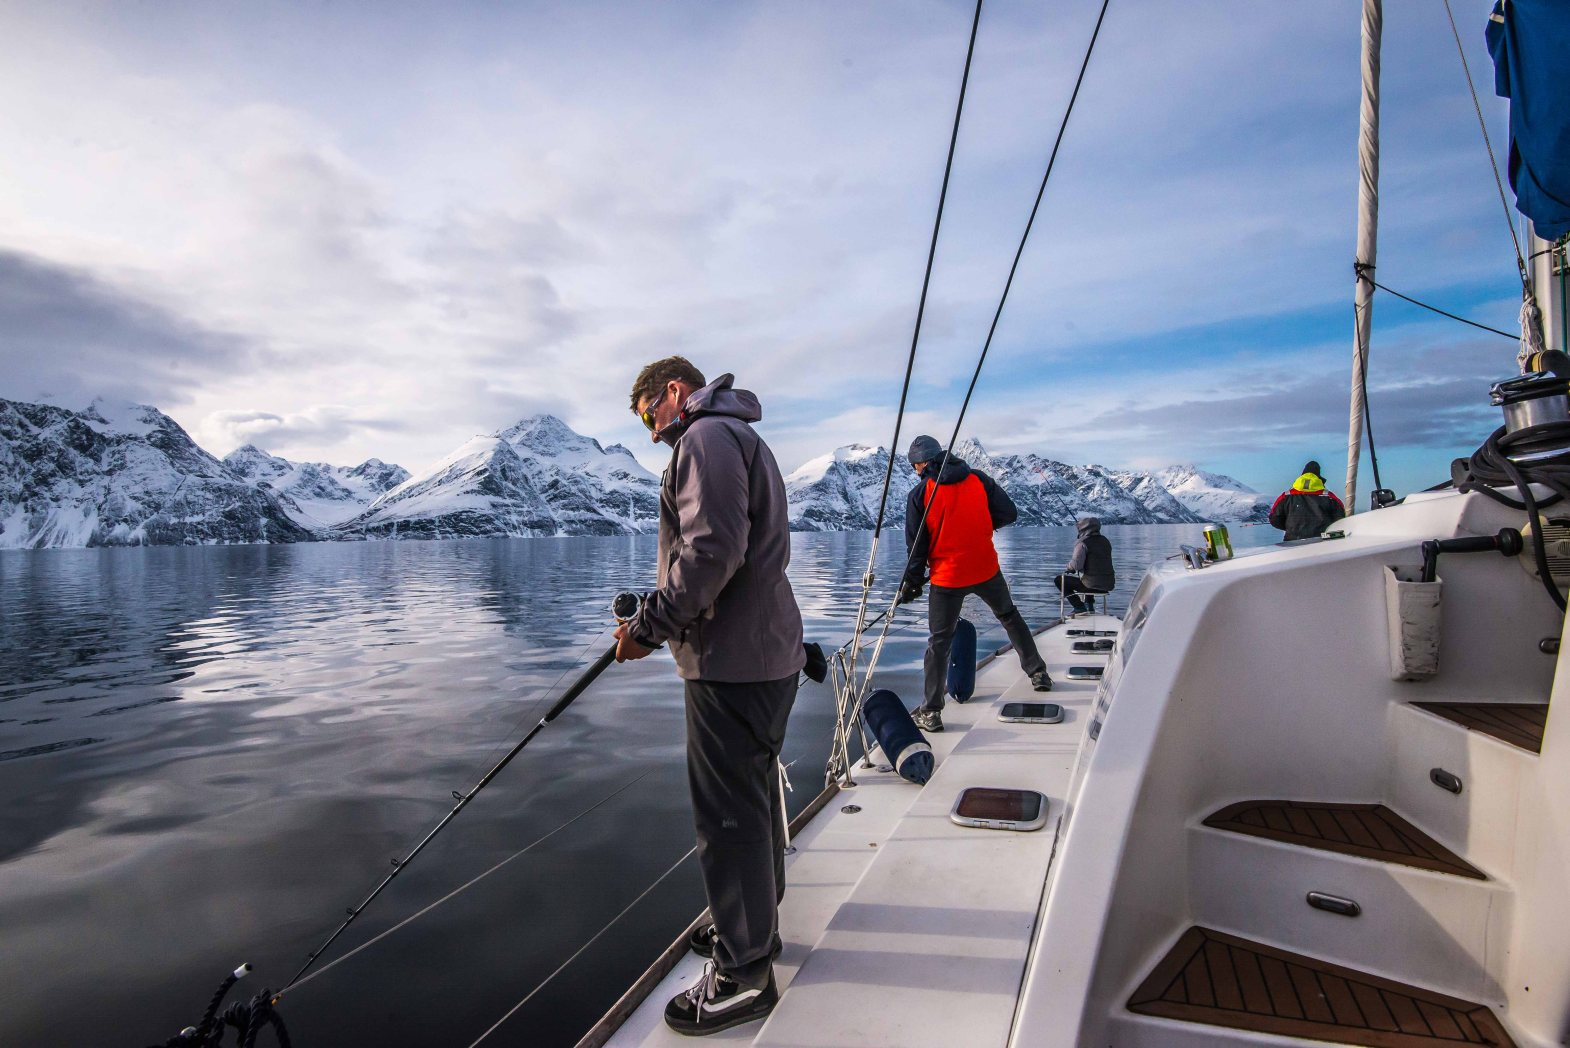 Fishing from the catamaran with the Lyngen alps in the background.